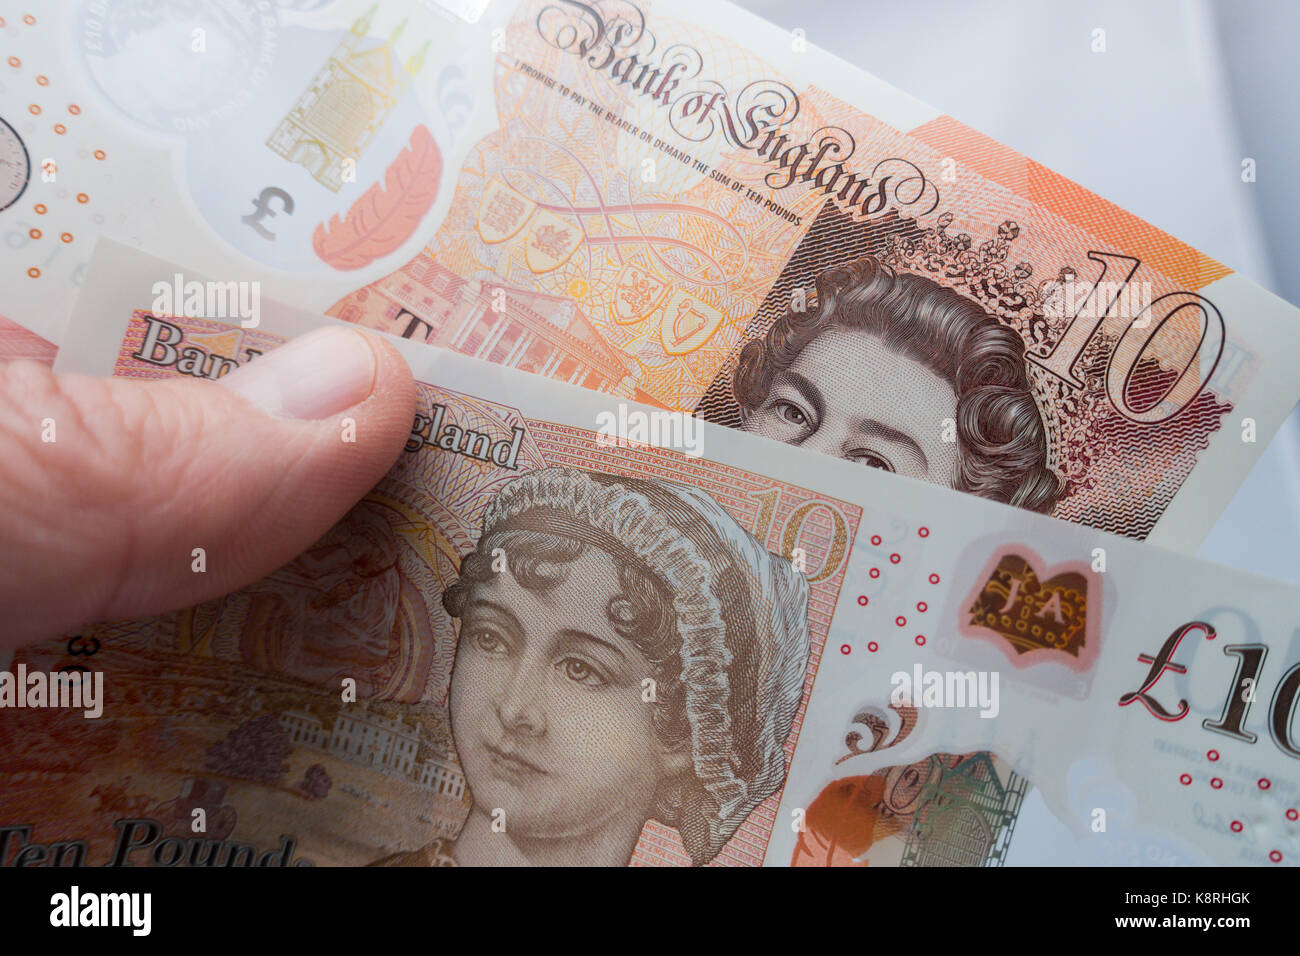 The new 10 pound note a modern Polymer banknote which will decrease environmental impact and cost less to replace, - Stock Image